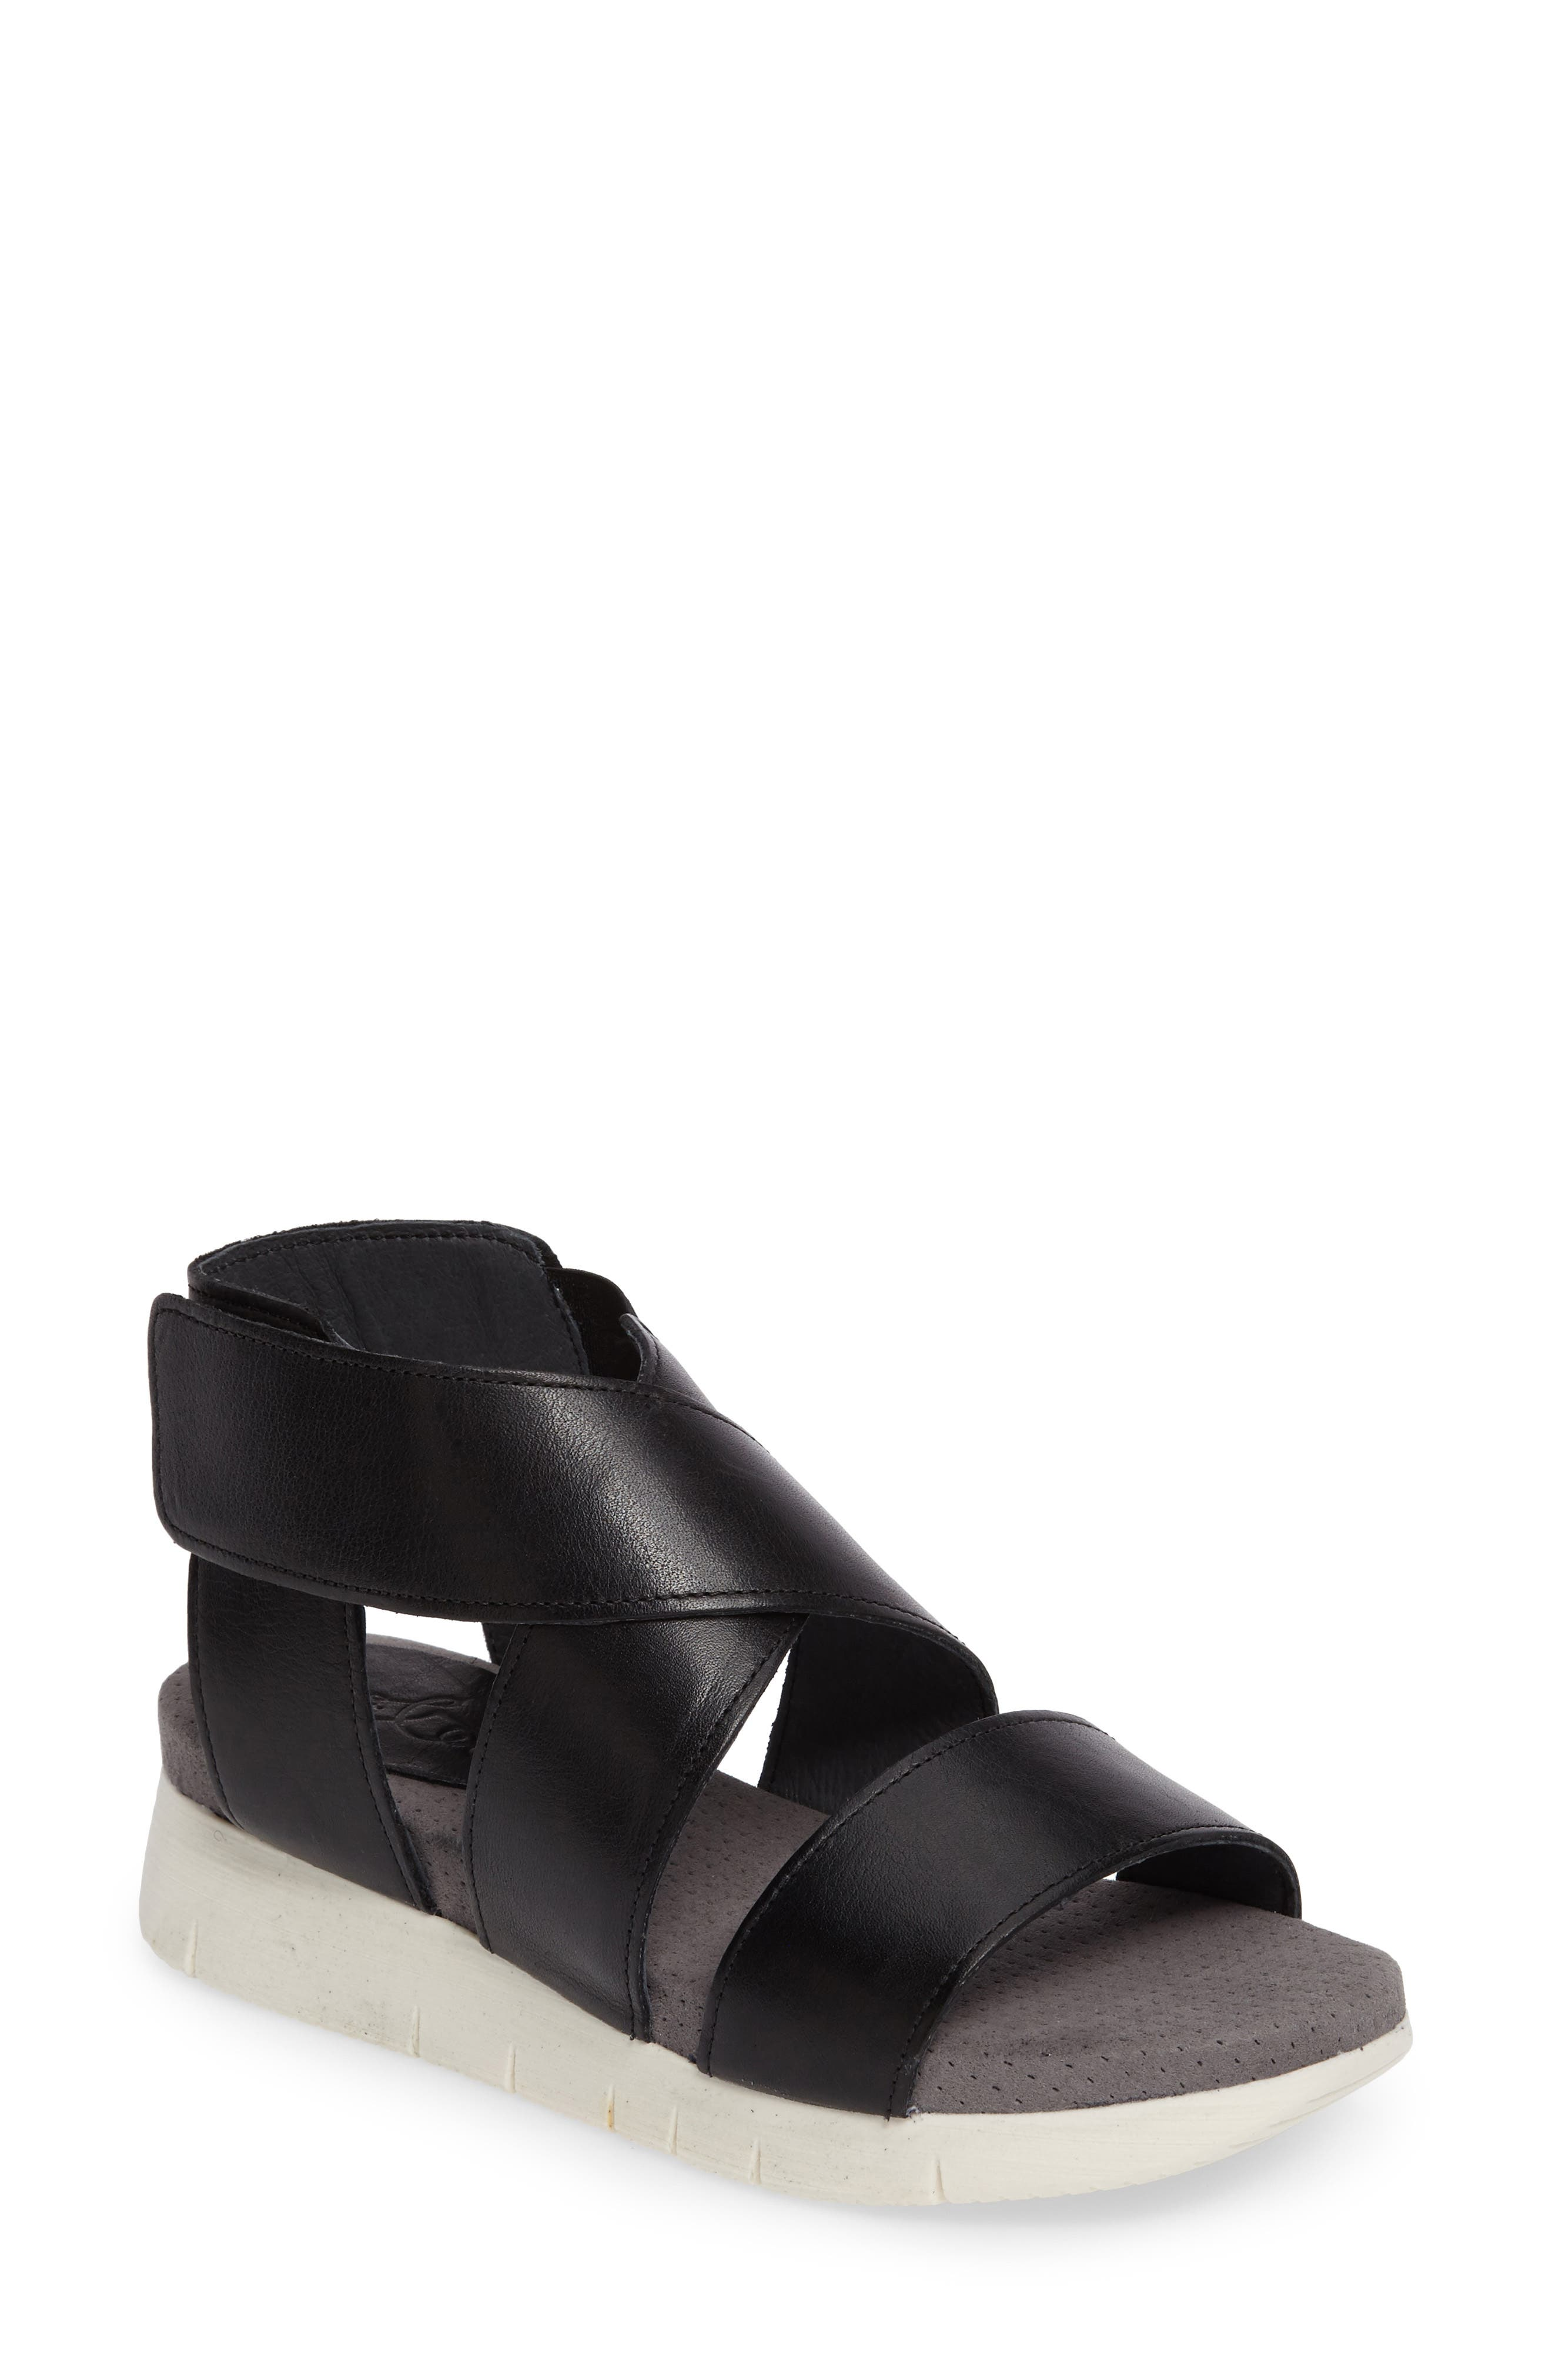 Bos. & Co. Piper Wedge Sandal (Women)